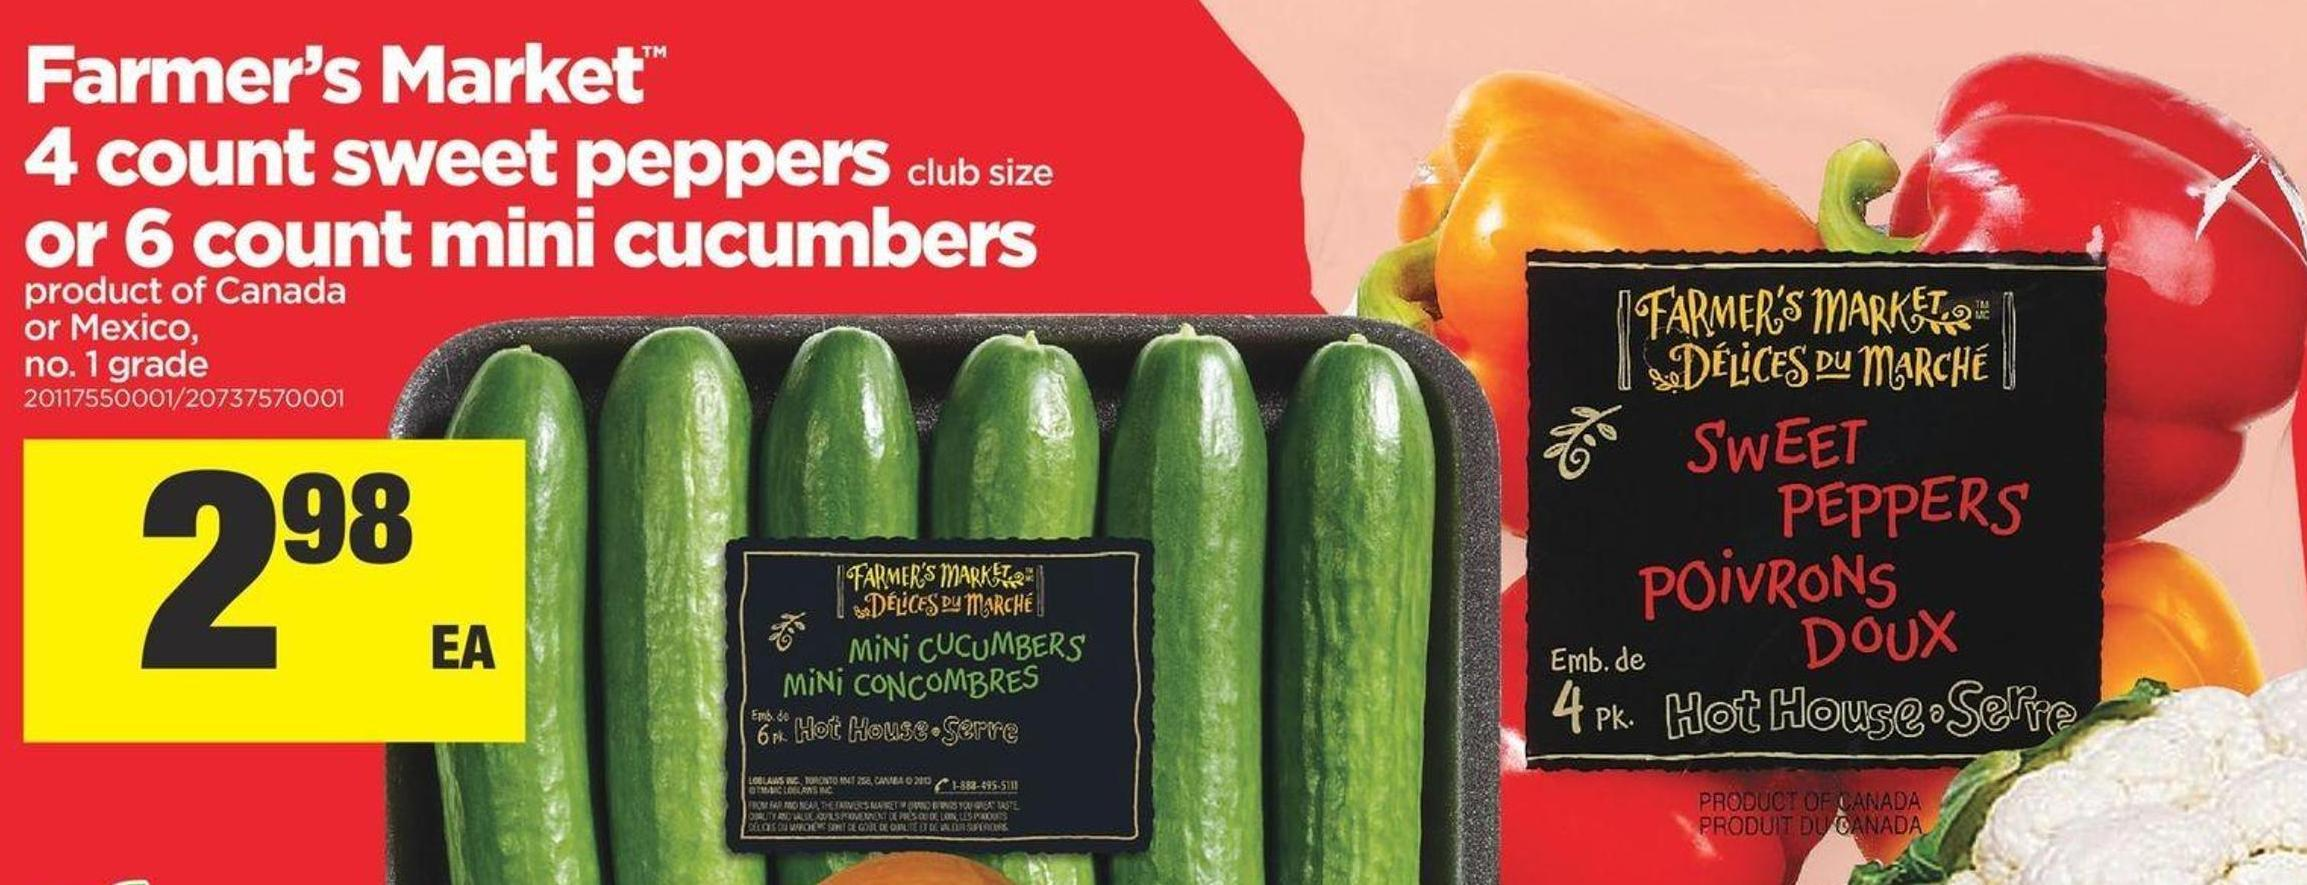 Farmer's Market 4 Count Sweet Peppers Club Size Or 6 Count Mini Cucumbers